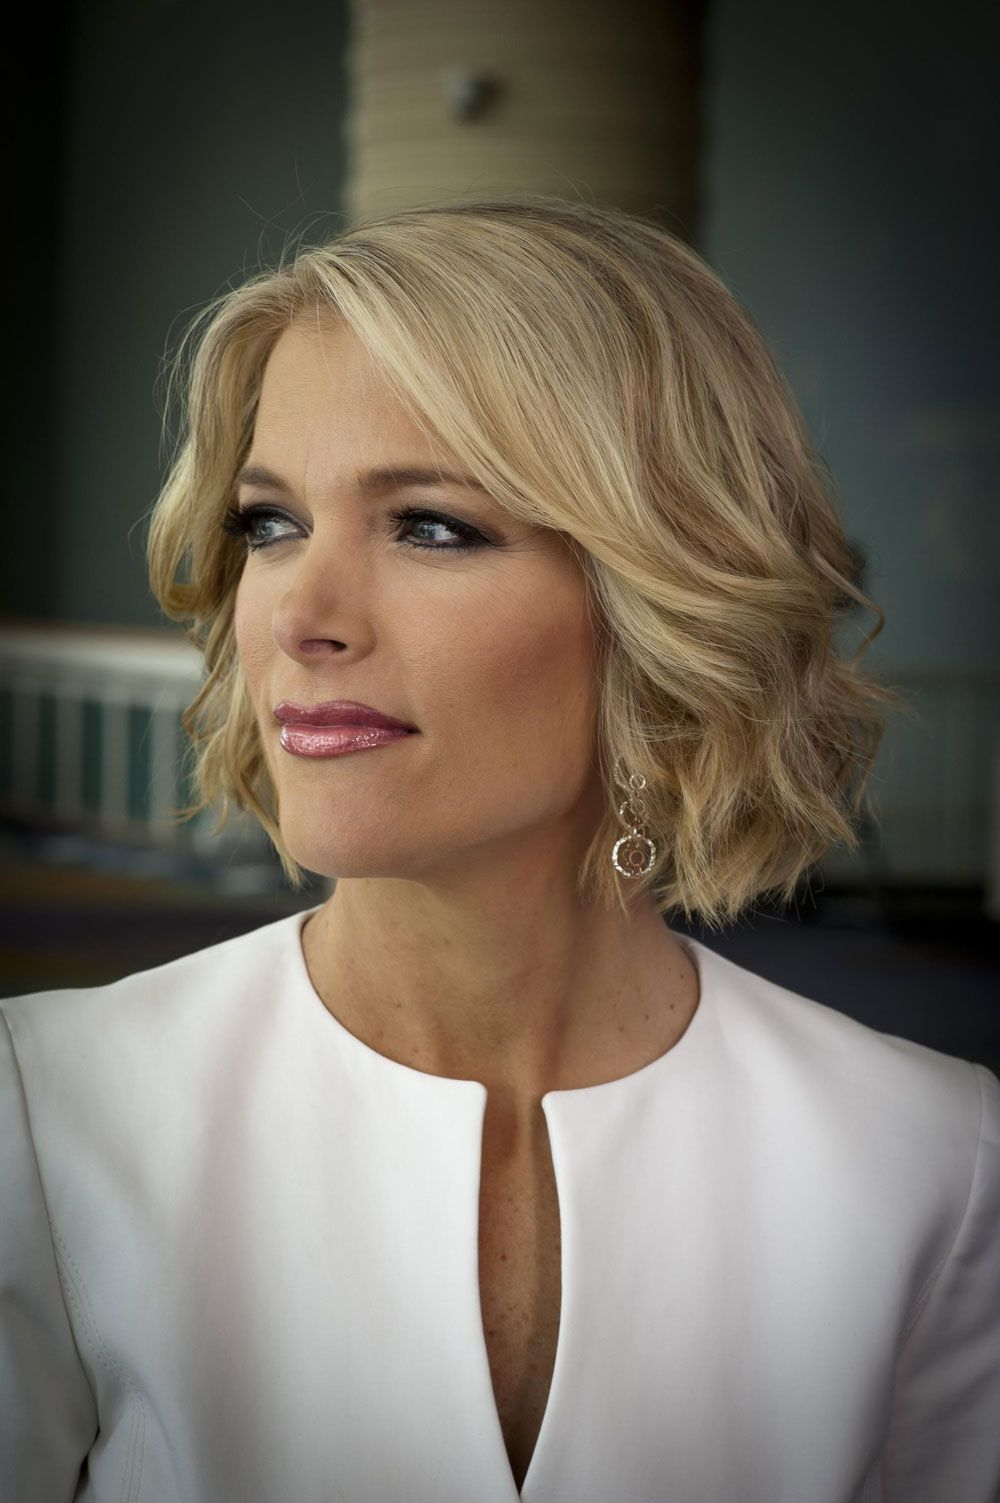 pin on blonde a celebrity megan kelly